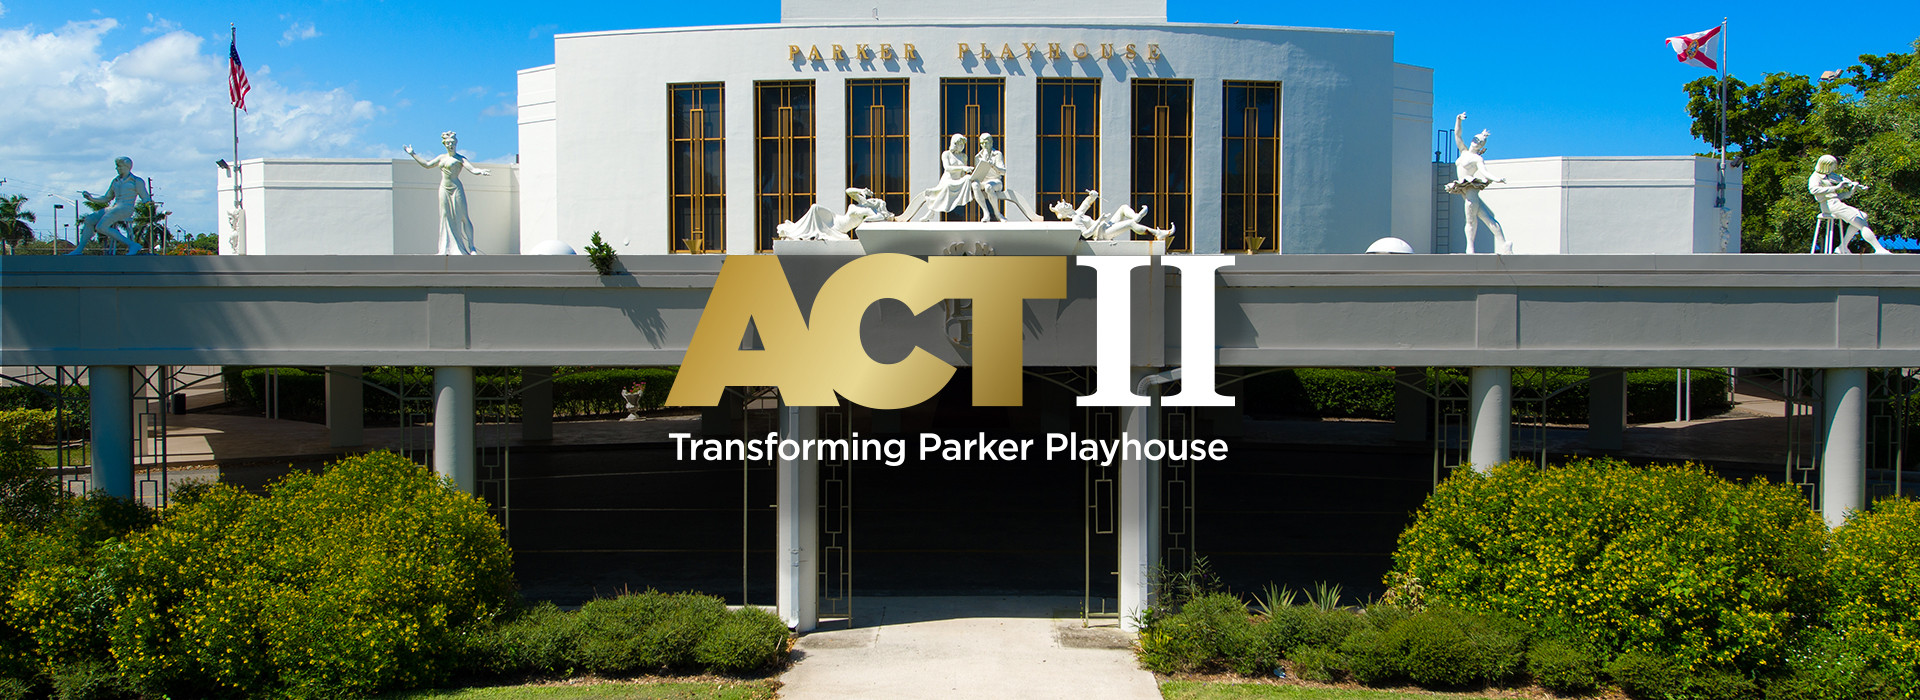 ACT 2 Transforming Parker Playhouse